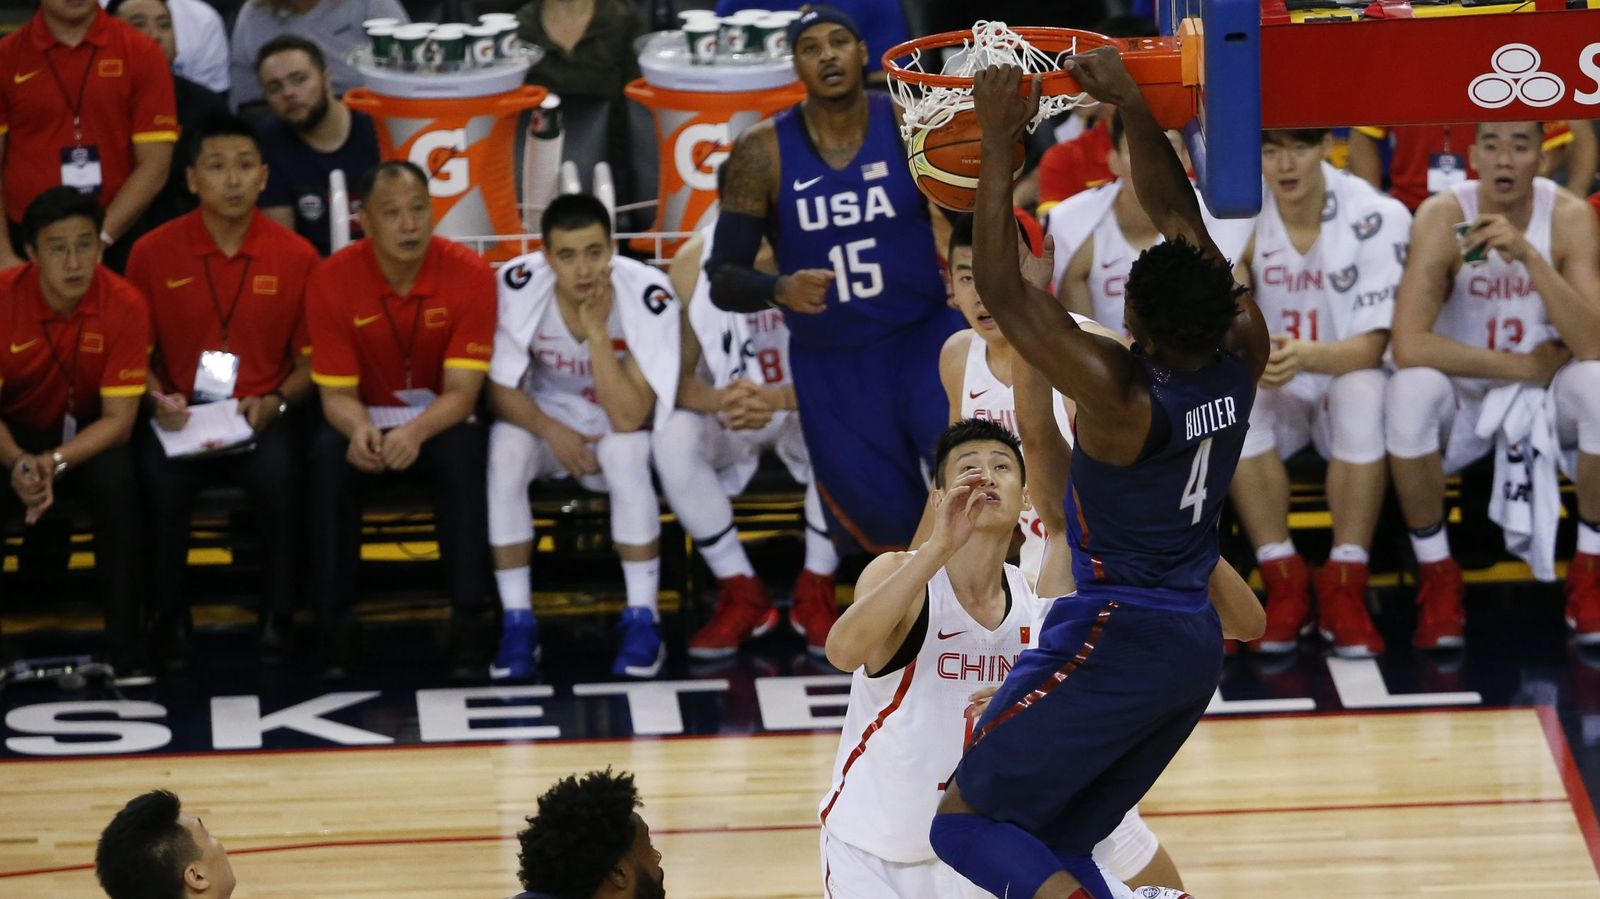 Foto: Jimmy Butler frente a China. (John G. Mabanglo/EFE)